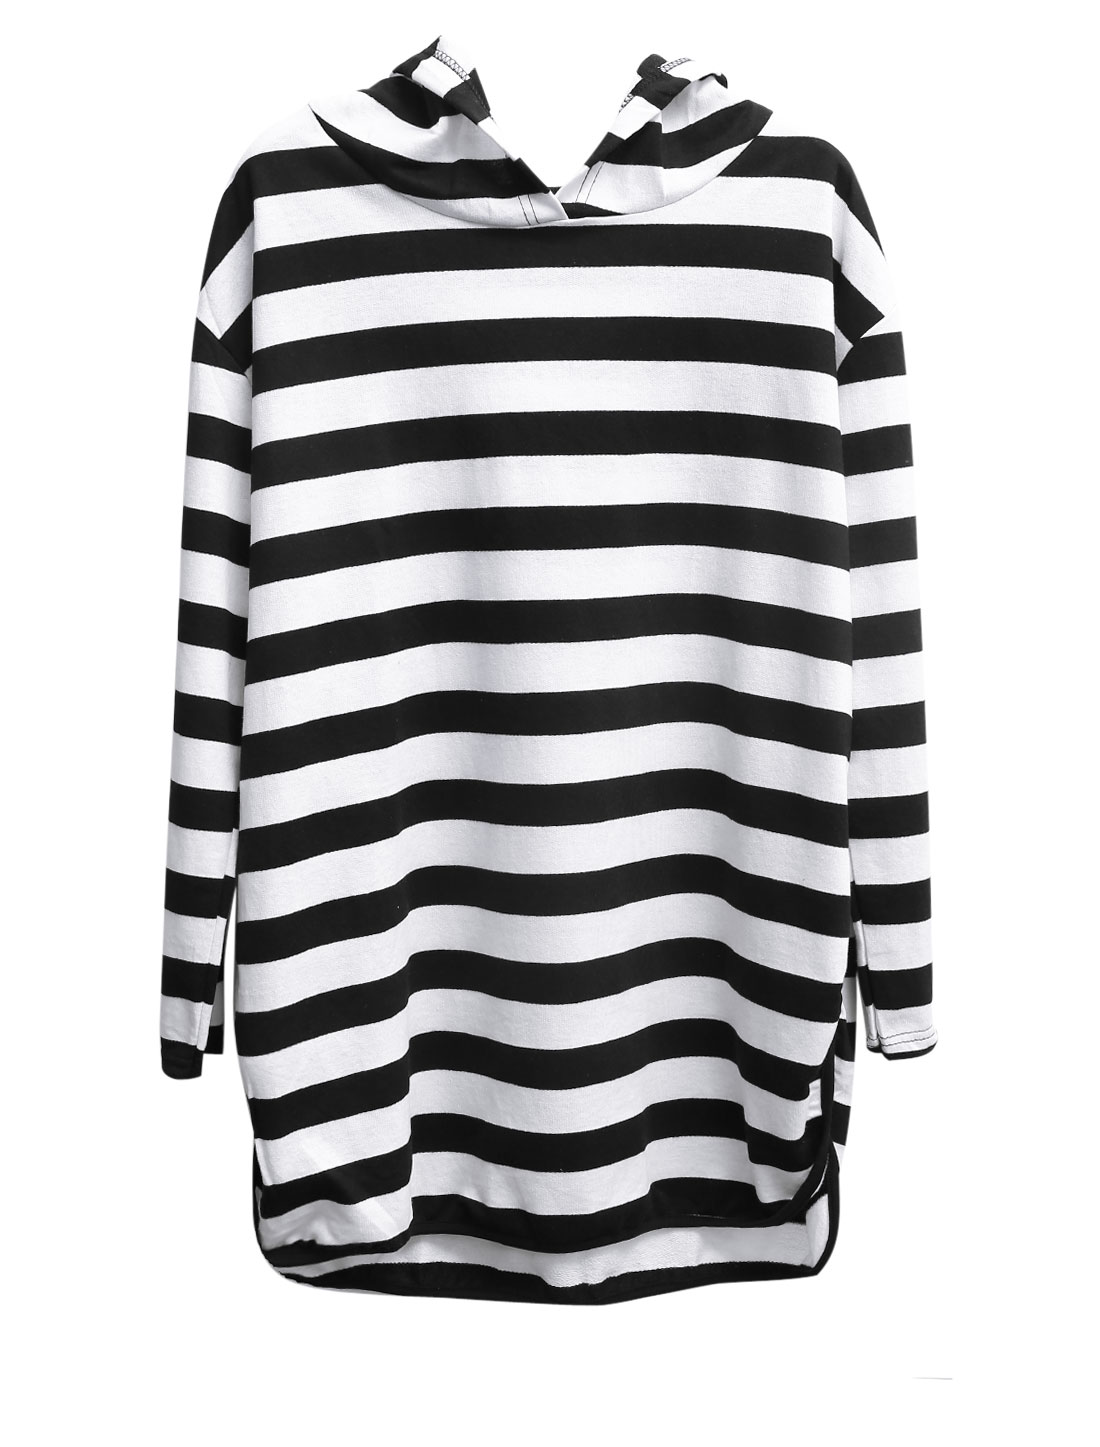 Women Stripes Split Sides Long Sleeves Hooded Sweatshirt Black White XS